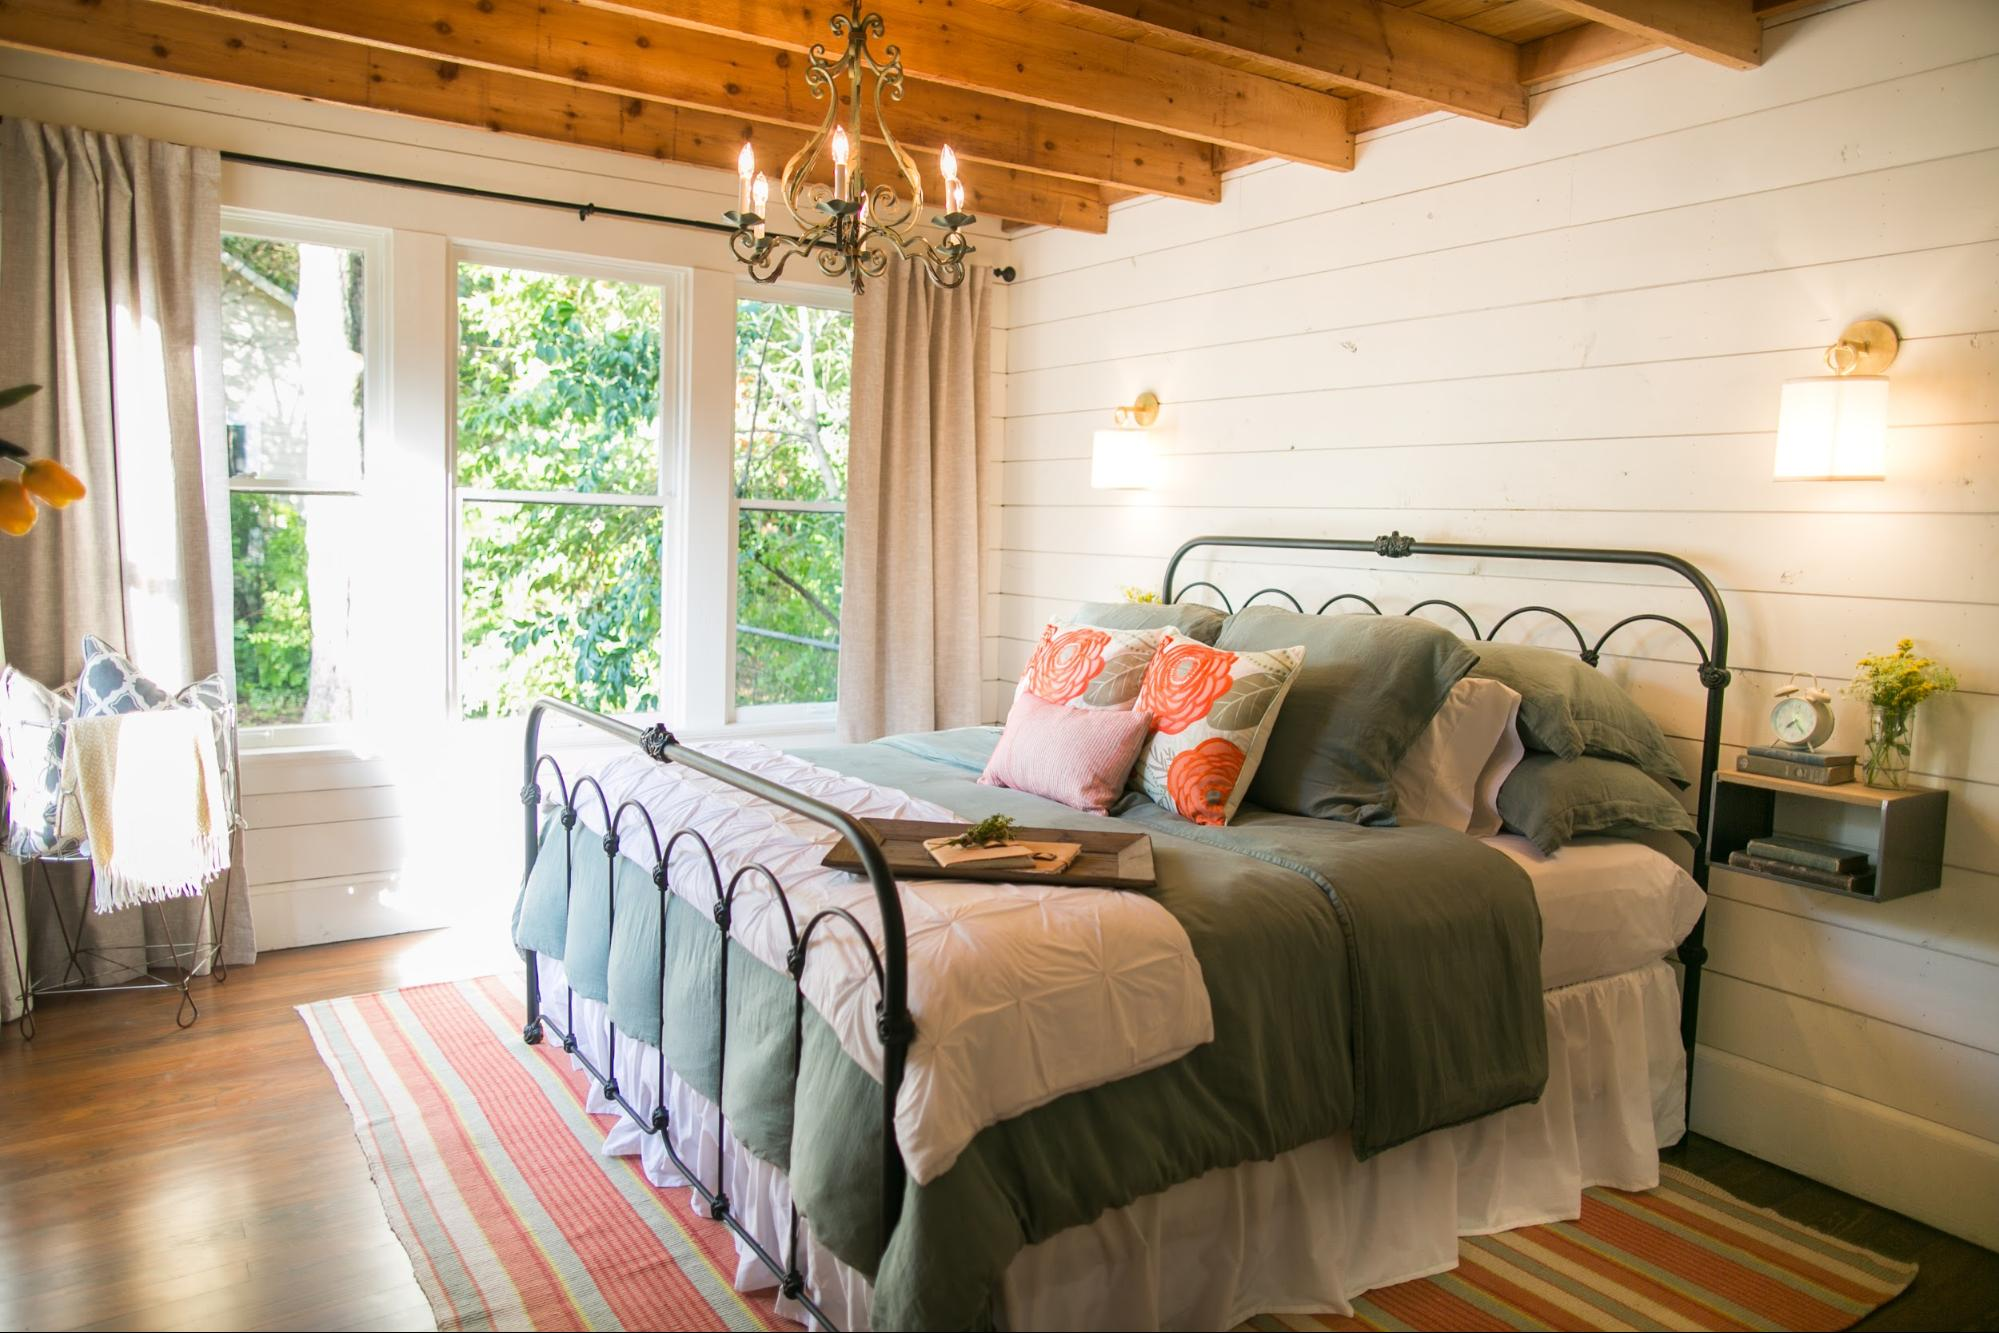 """Image is of the """"Beanstalk Bungalow"""" home in  Fixer Upper"""